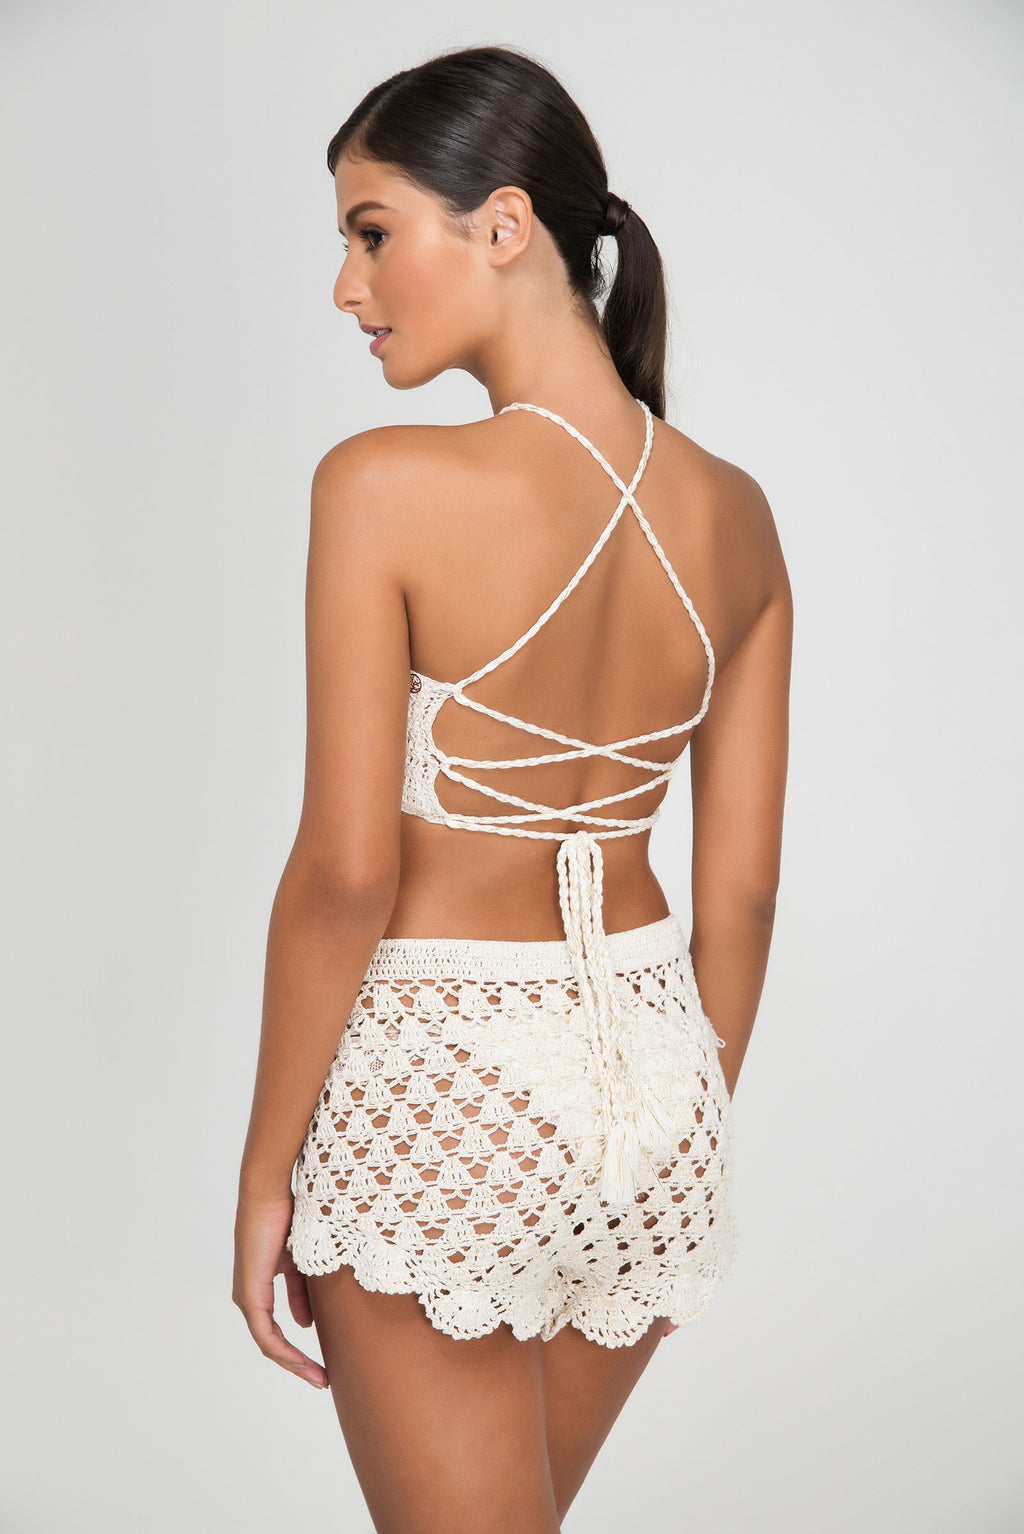 ROSE LACE CROCHET SWEET SHORTS - LE BAIN RESORTWEAR